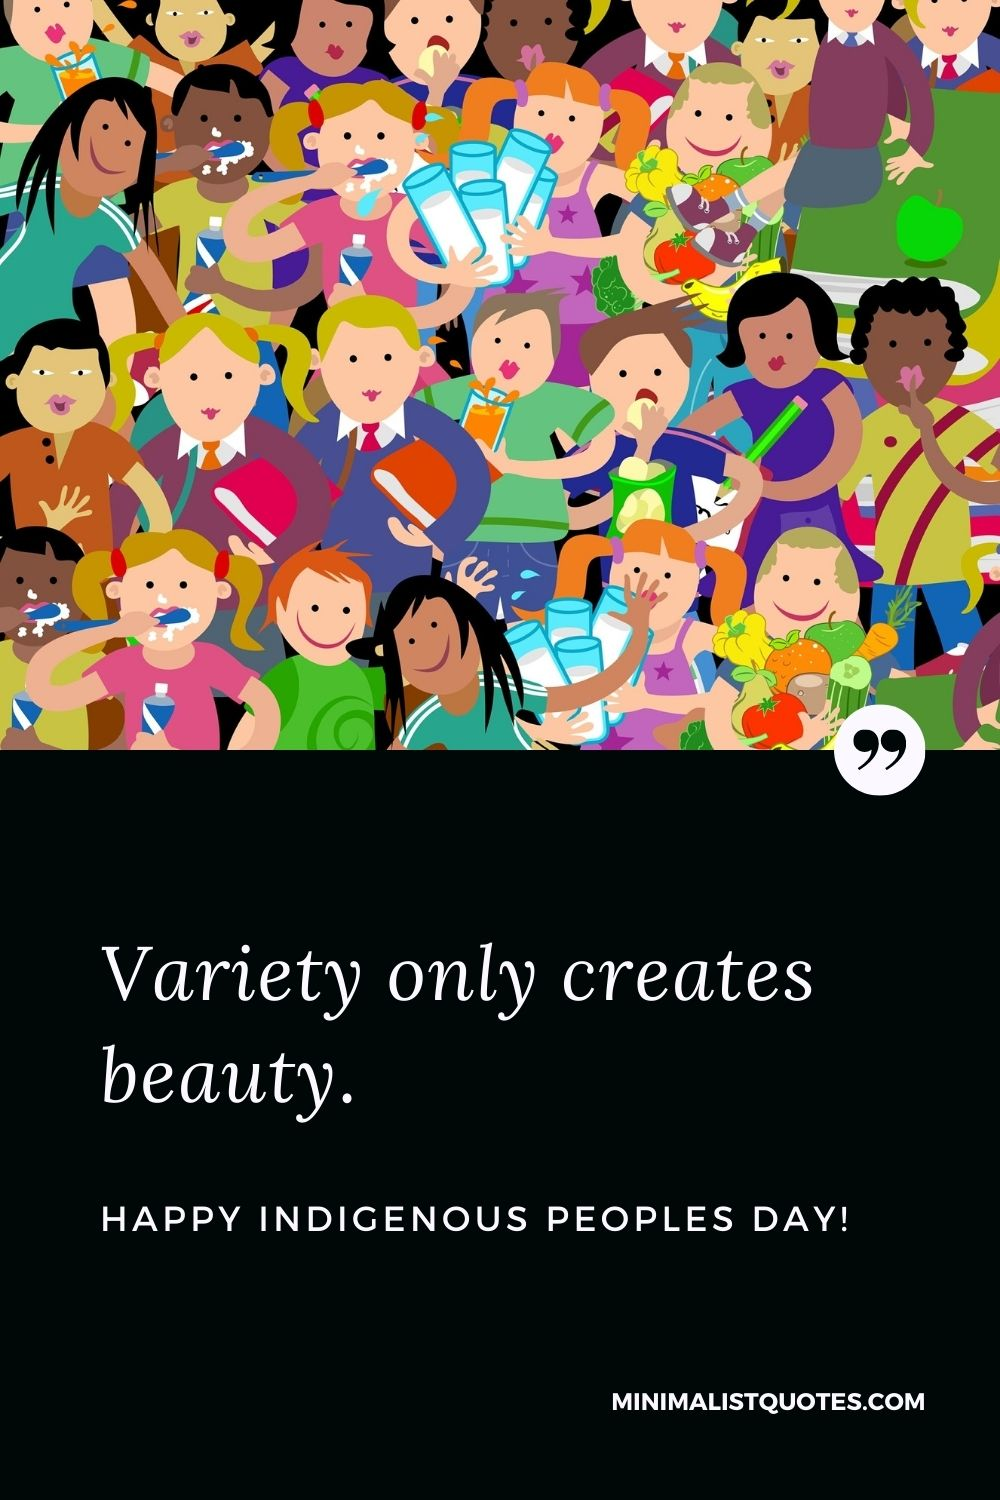 Indigenous Peoples Day Quote, Wish & Message With Image: Variety only creates beauty. Happy Indigenous Peoples Day!